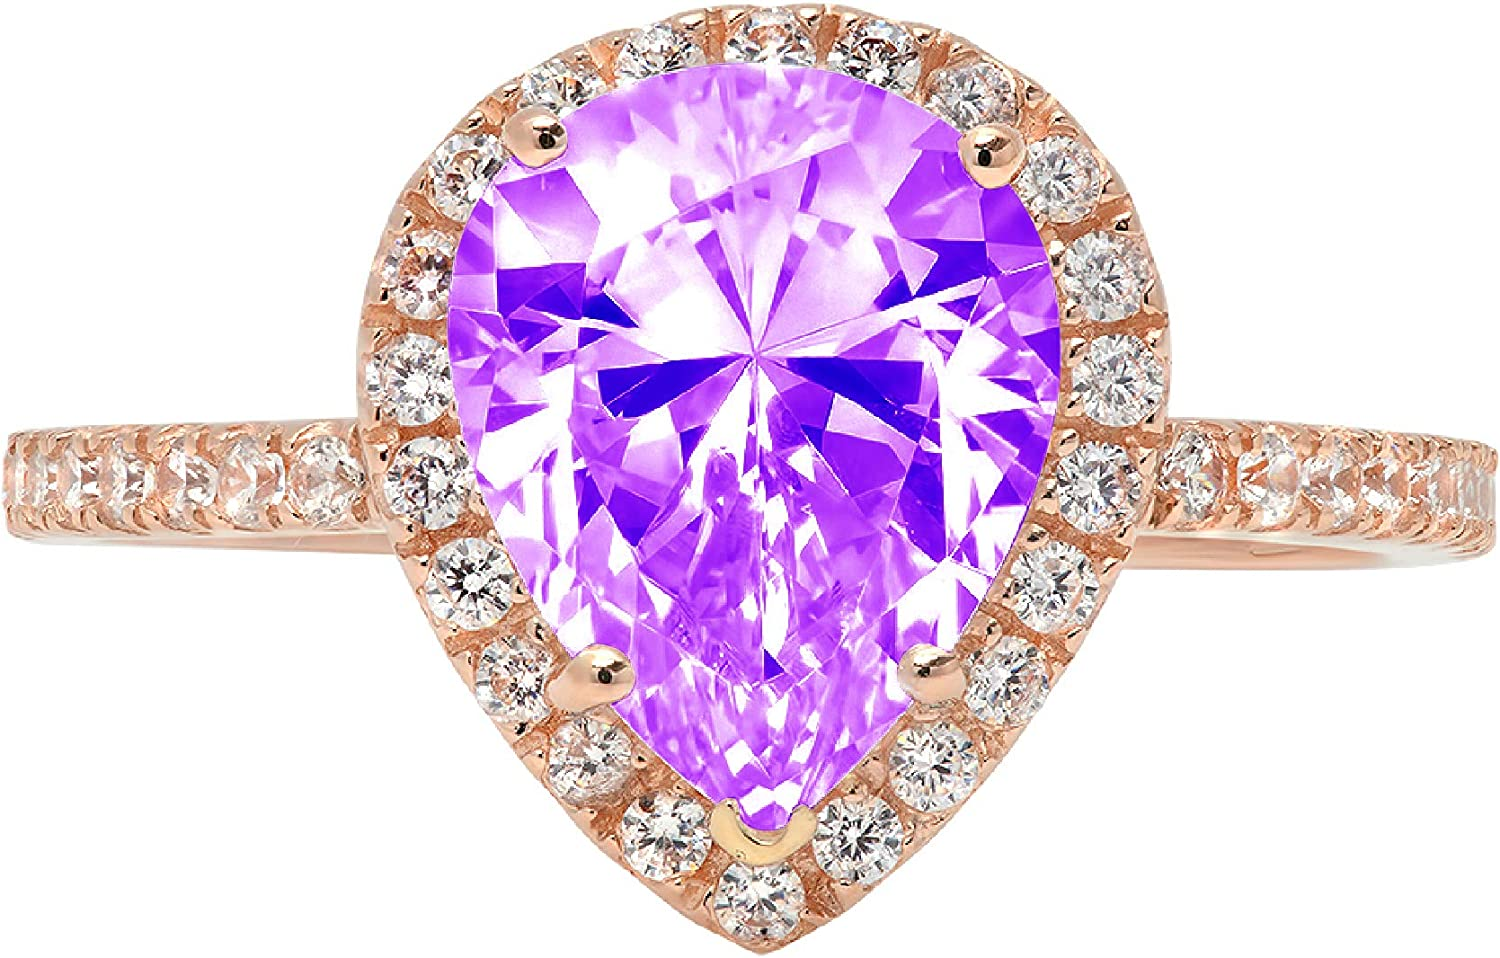 2.45ct Brilliant Pear Cut Solitaire with Accent Halo Natural Purple Amethyst Gem Stone Ideal VVS1 Engagement Promise Anniversary Bridal Wedding Ring Real 14k Rose Gold